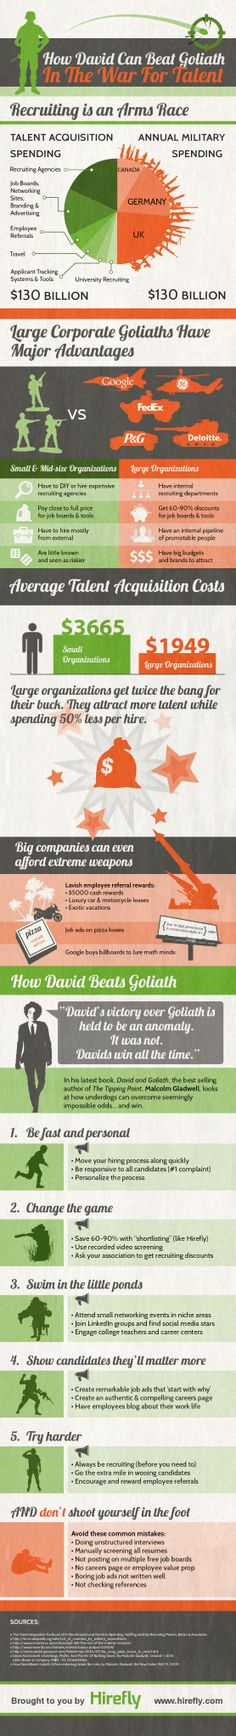 How David Can Beat Goliath In The War For Talent #infographic #talent #infografía